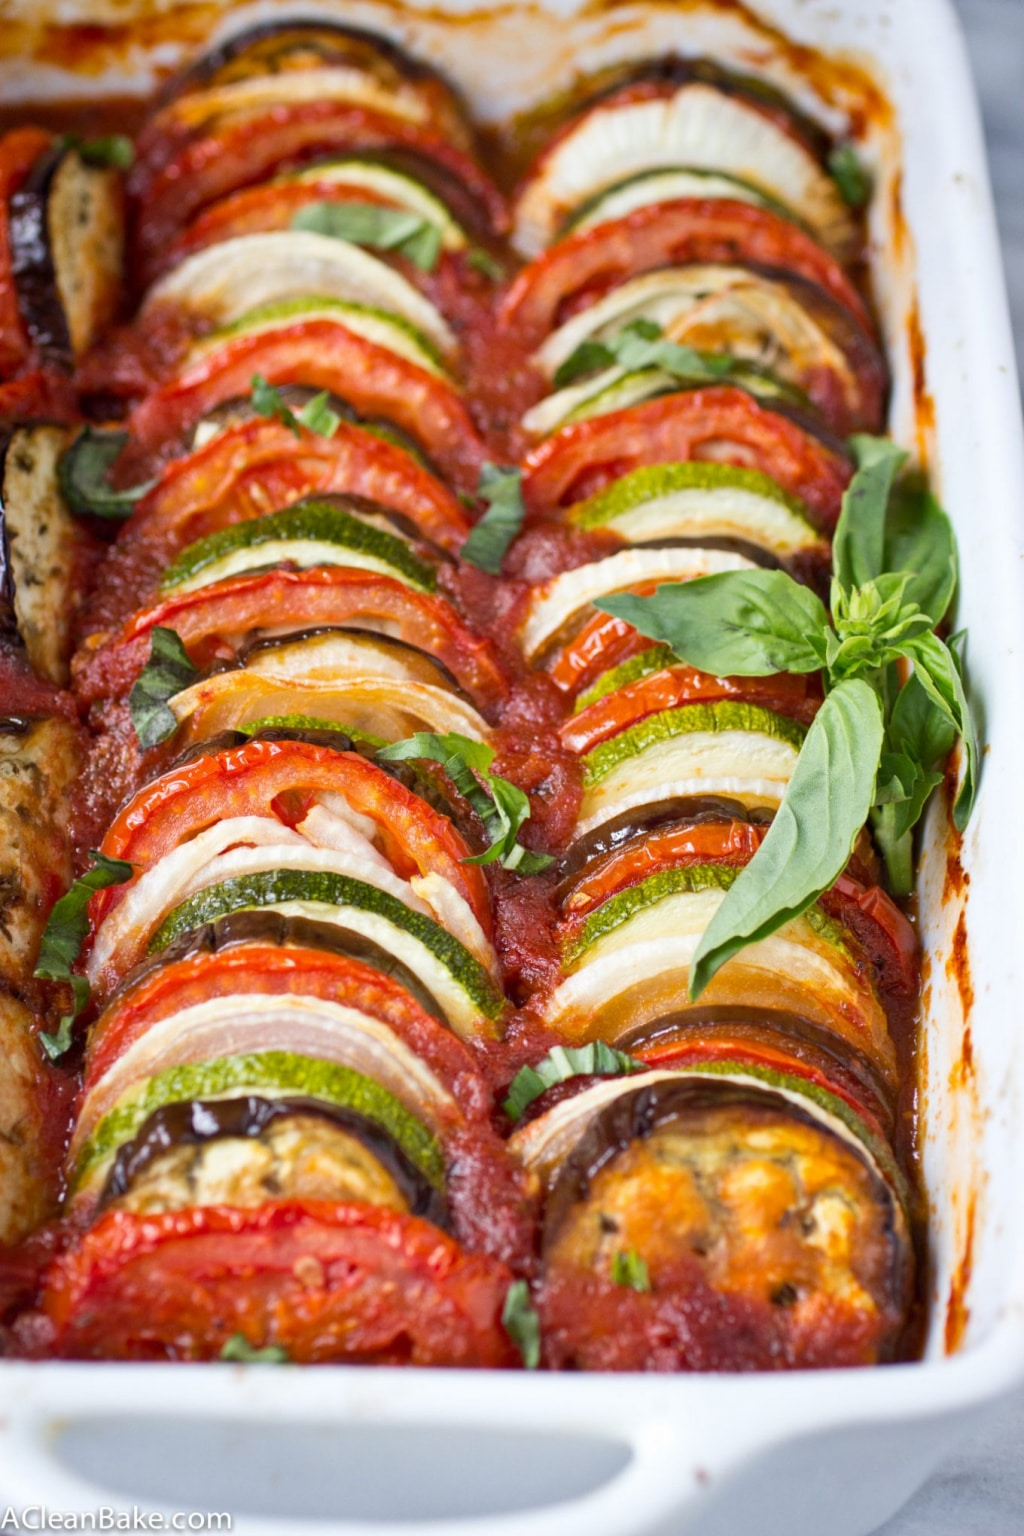 This Ratatouille recipe comes together quickly for a fresh weeknight ...